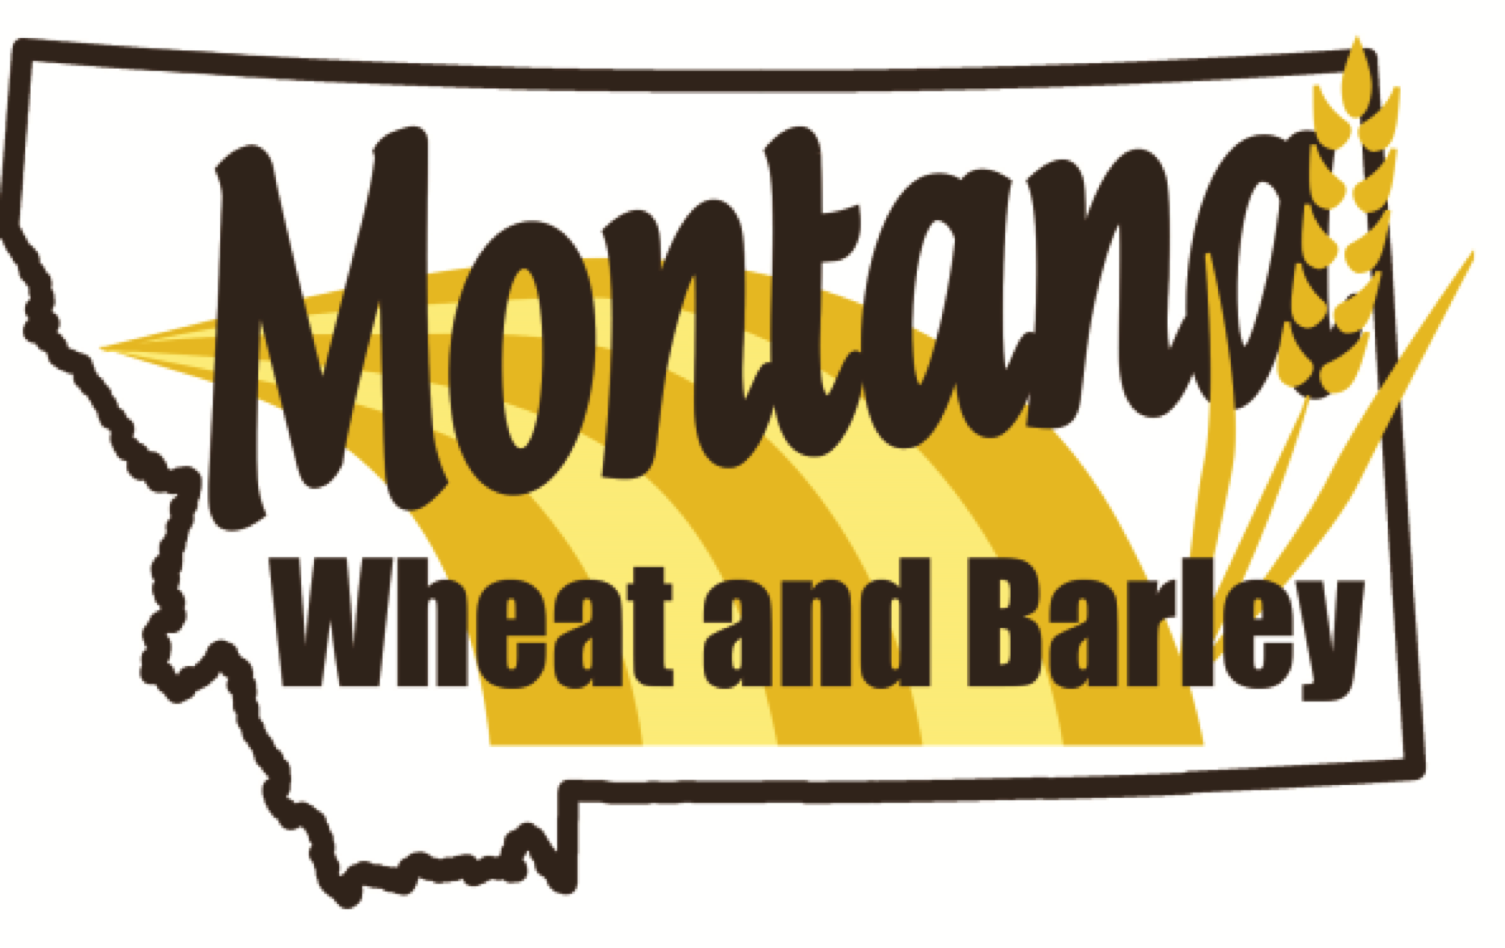 Montana Wheat & Barley Committee